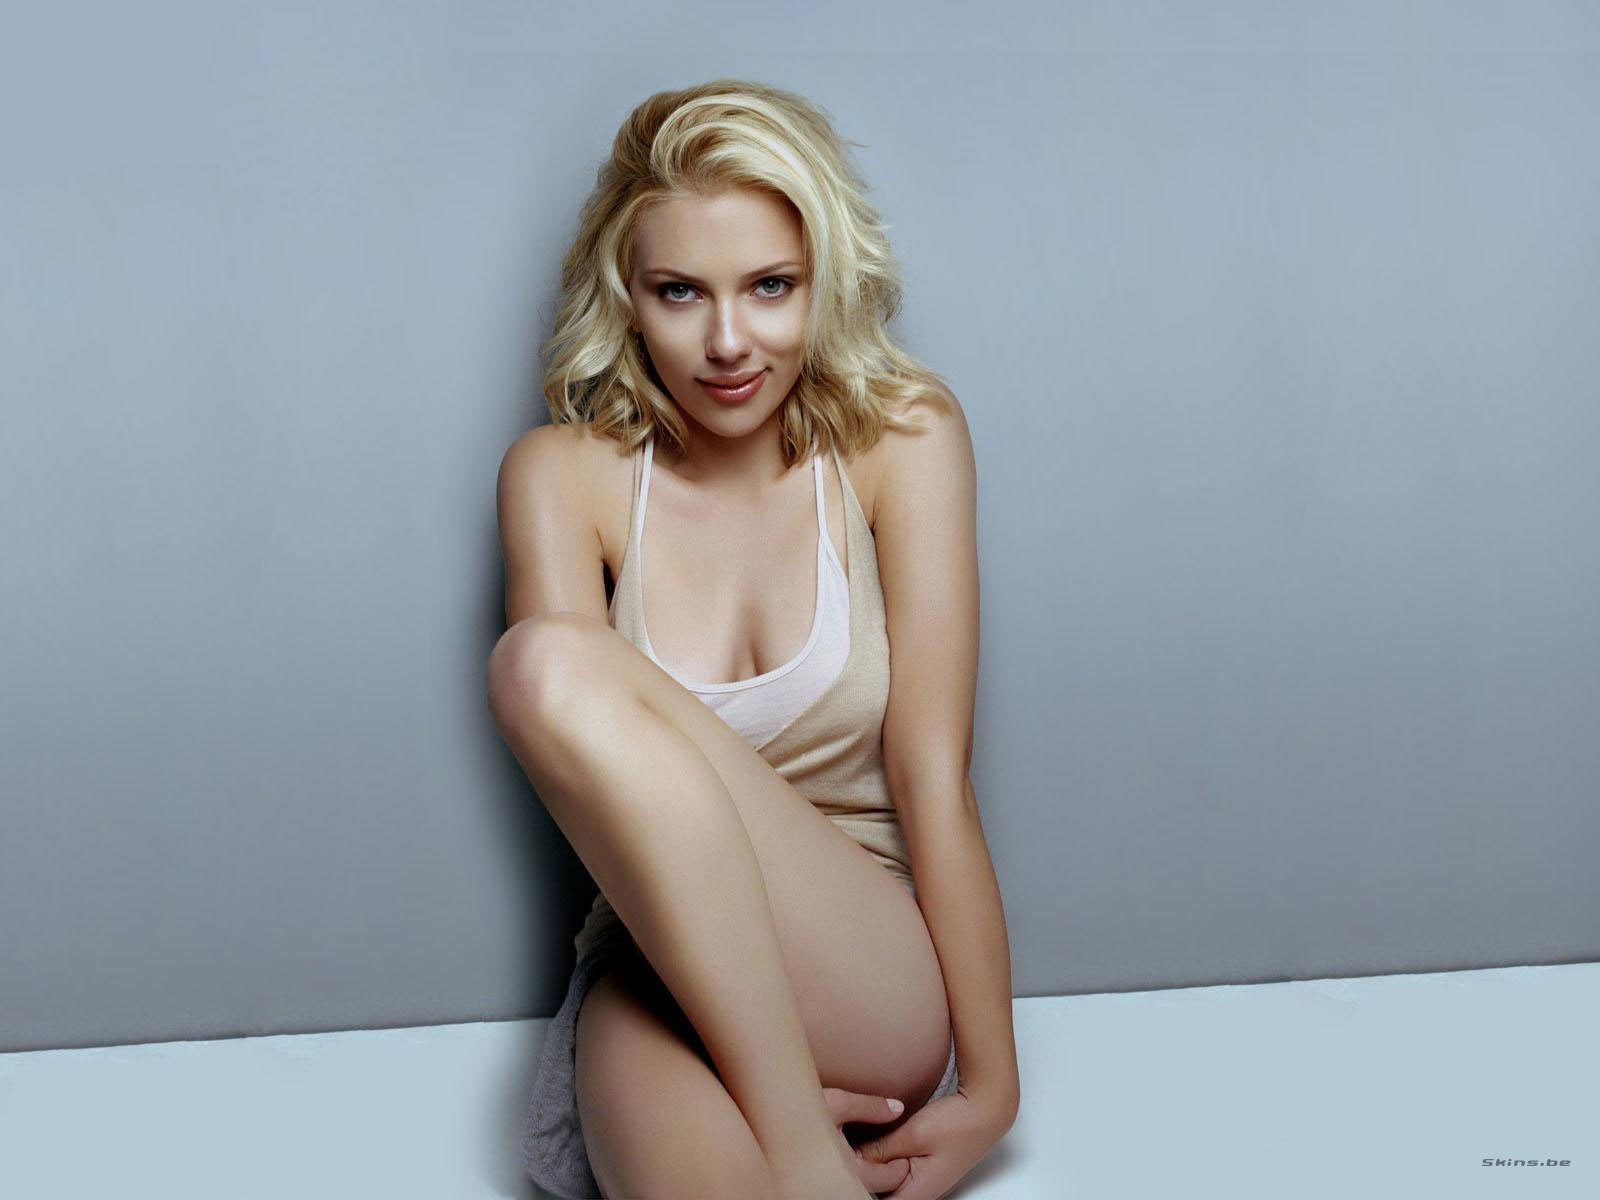 Scarlett Johansson Wallpaper on Scarlett Johansson Hd Wallpaper   Celebrity   Actress   179188